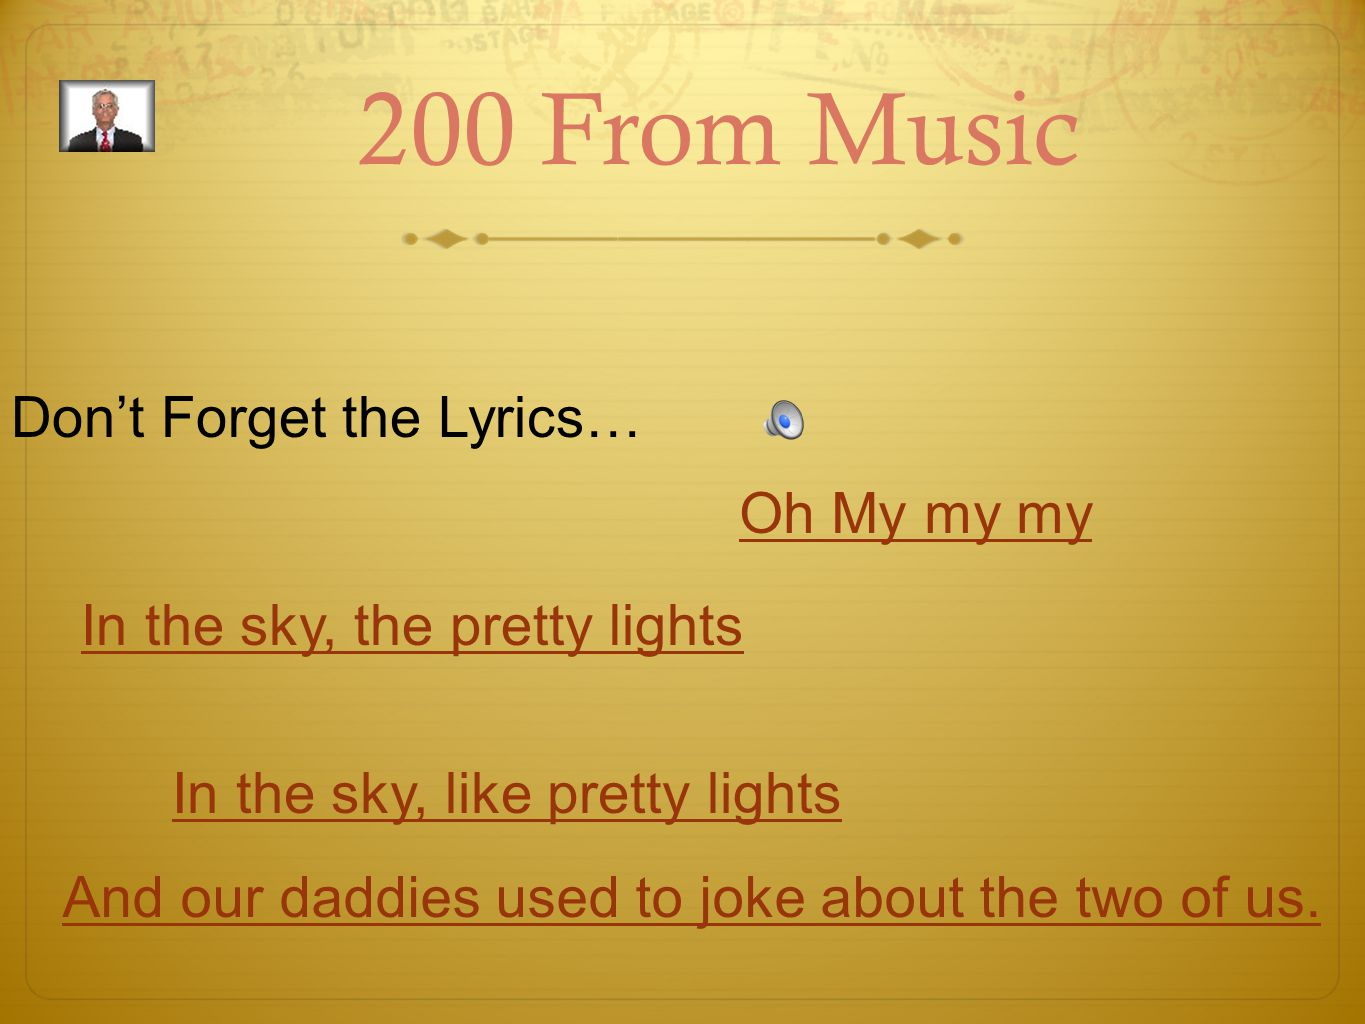 200 From Music Don't Forget the Lyrics… In the sky, the pretty lights In the sky, like pretty lights And our daddies used to joke about the two of us.